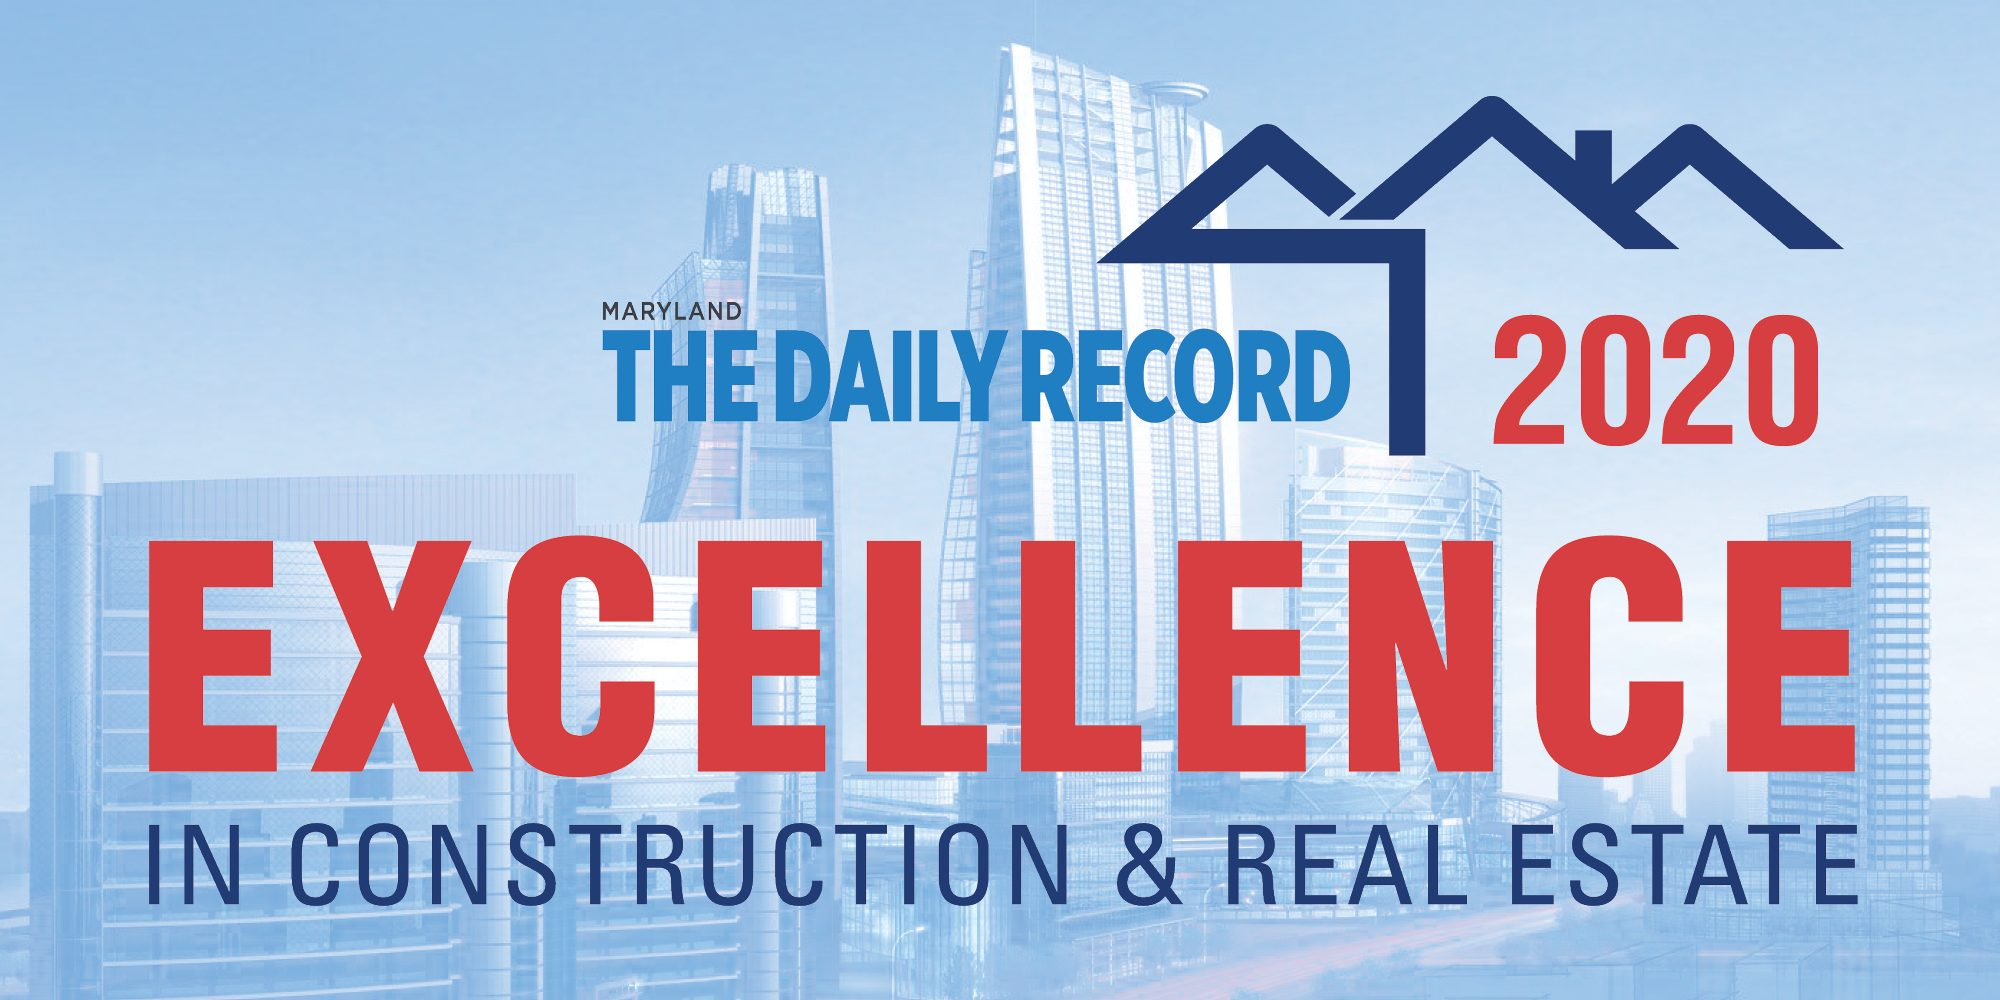 Harkins honoree in The Daily Record 2020 Excellence in Construction & Real Estate